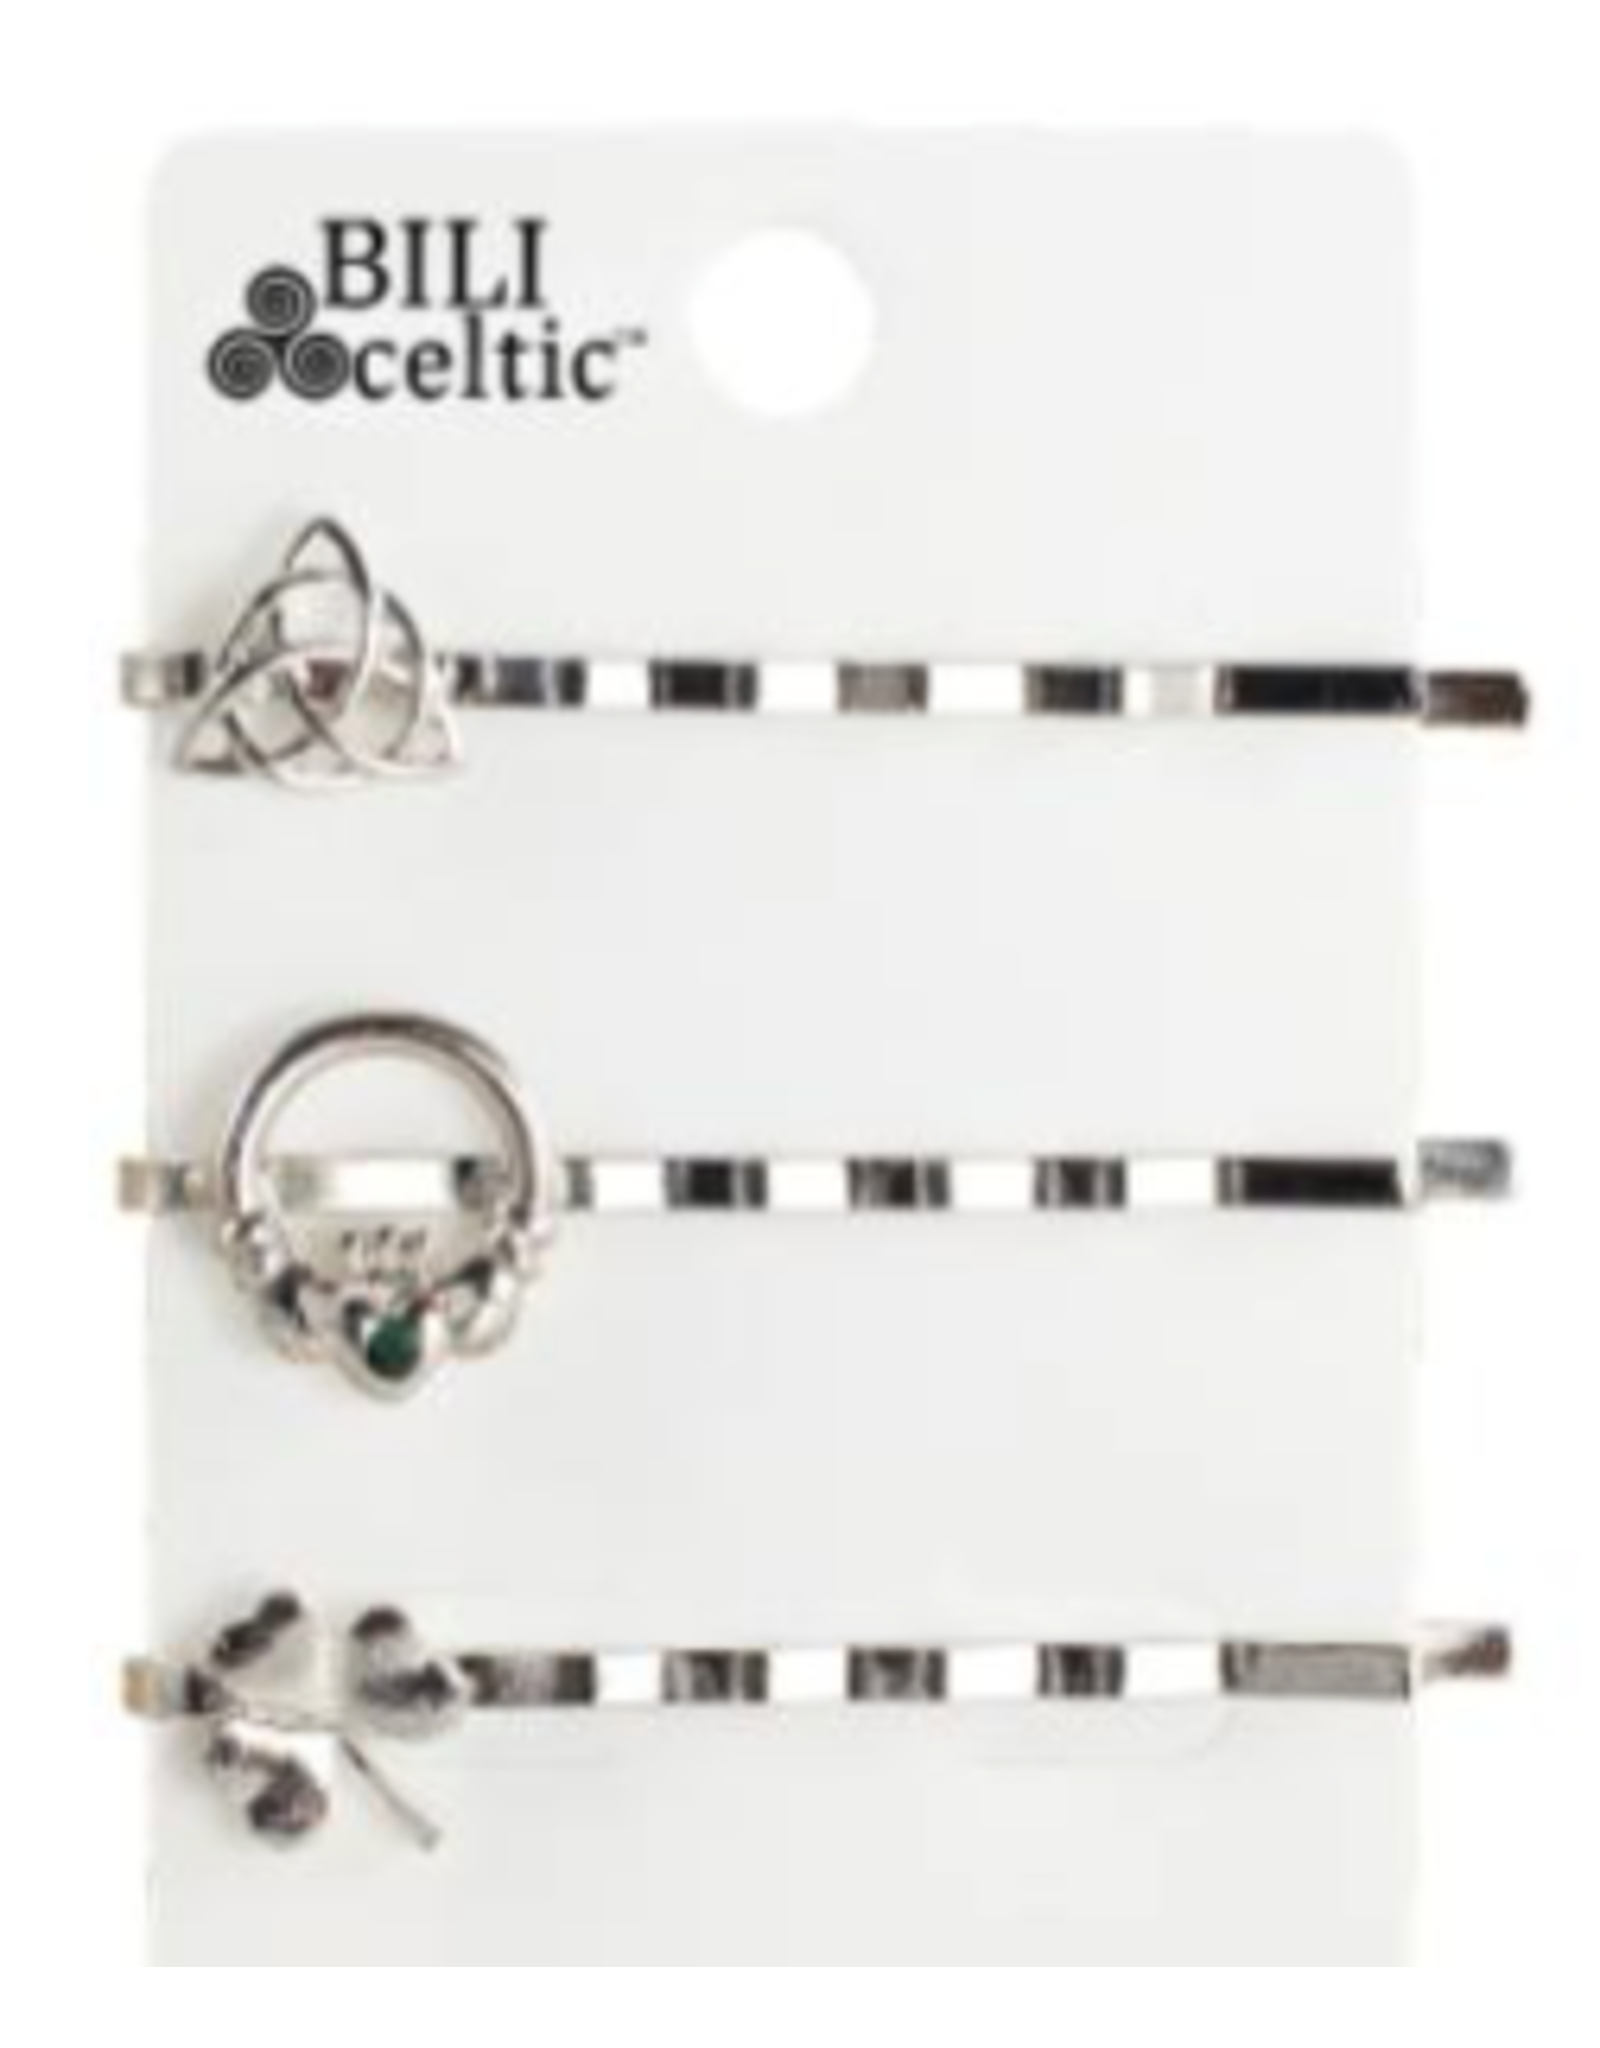 Because I Like It Celtic Hair Pins: Silver